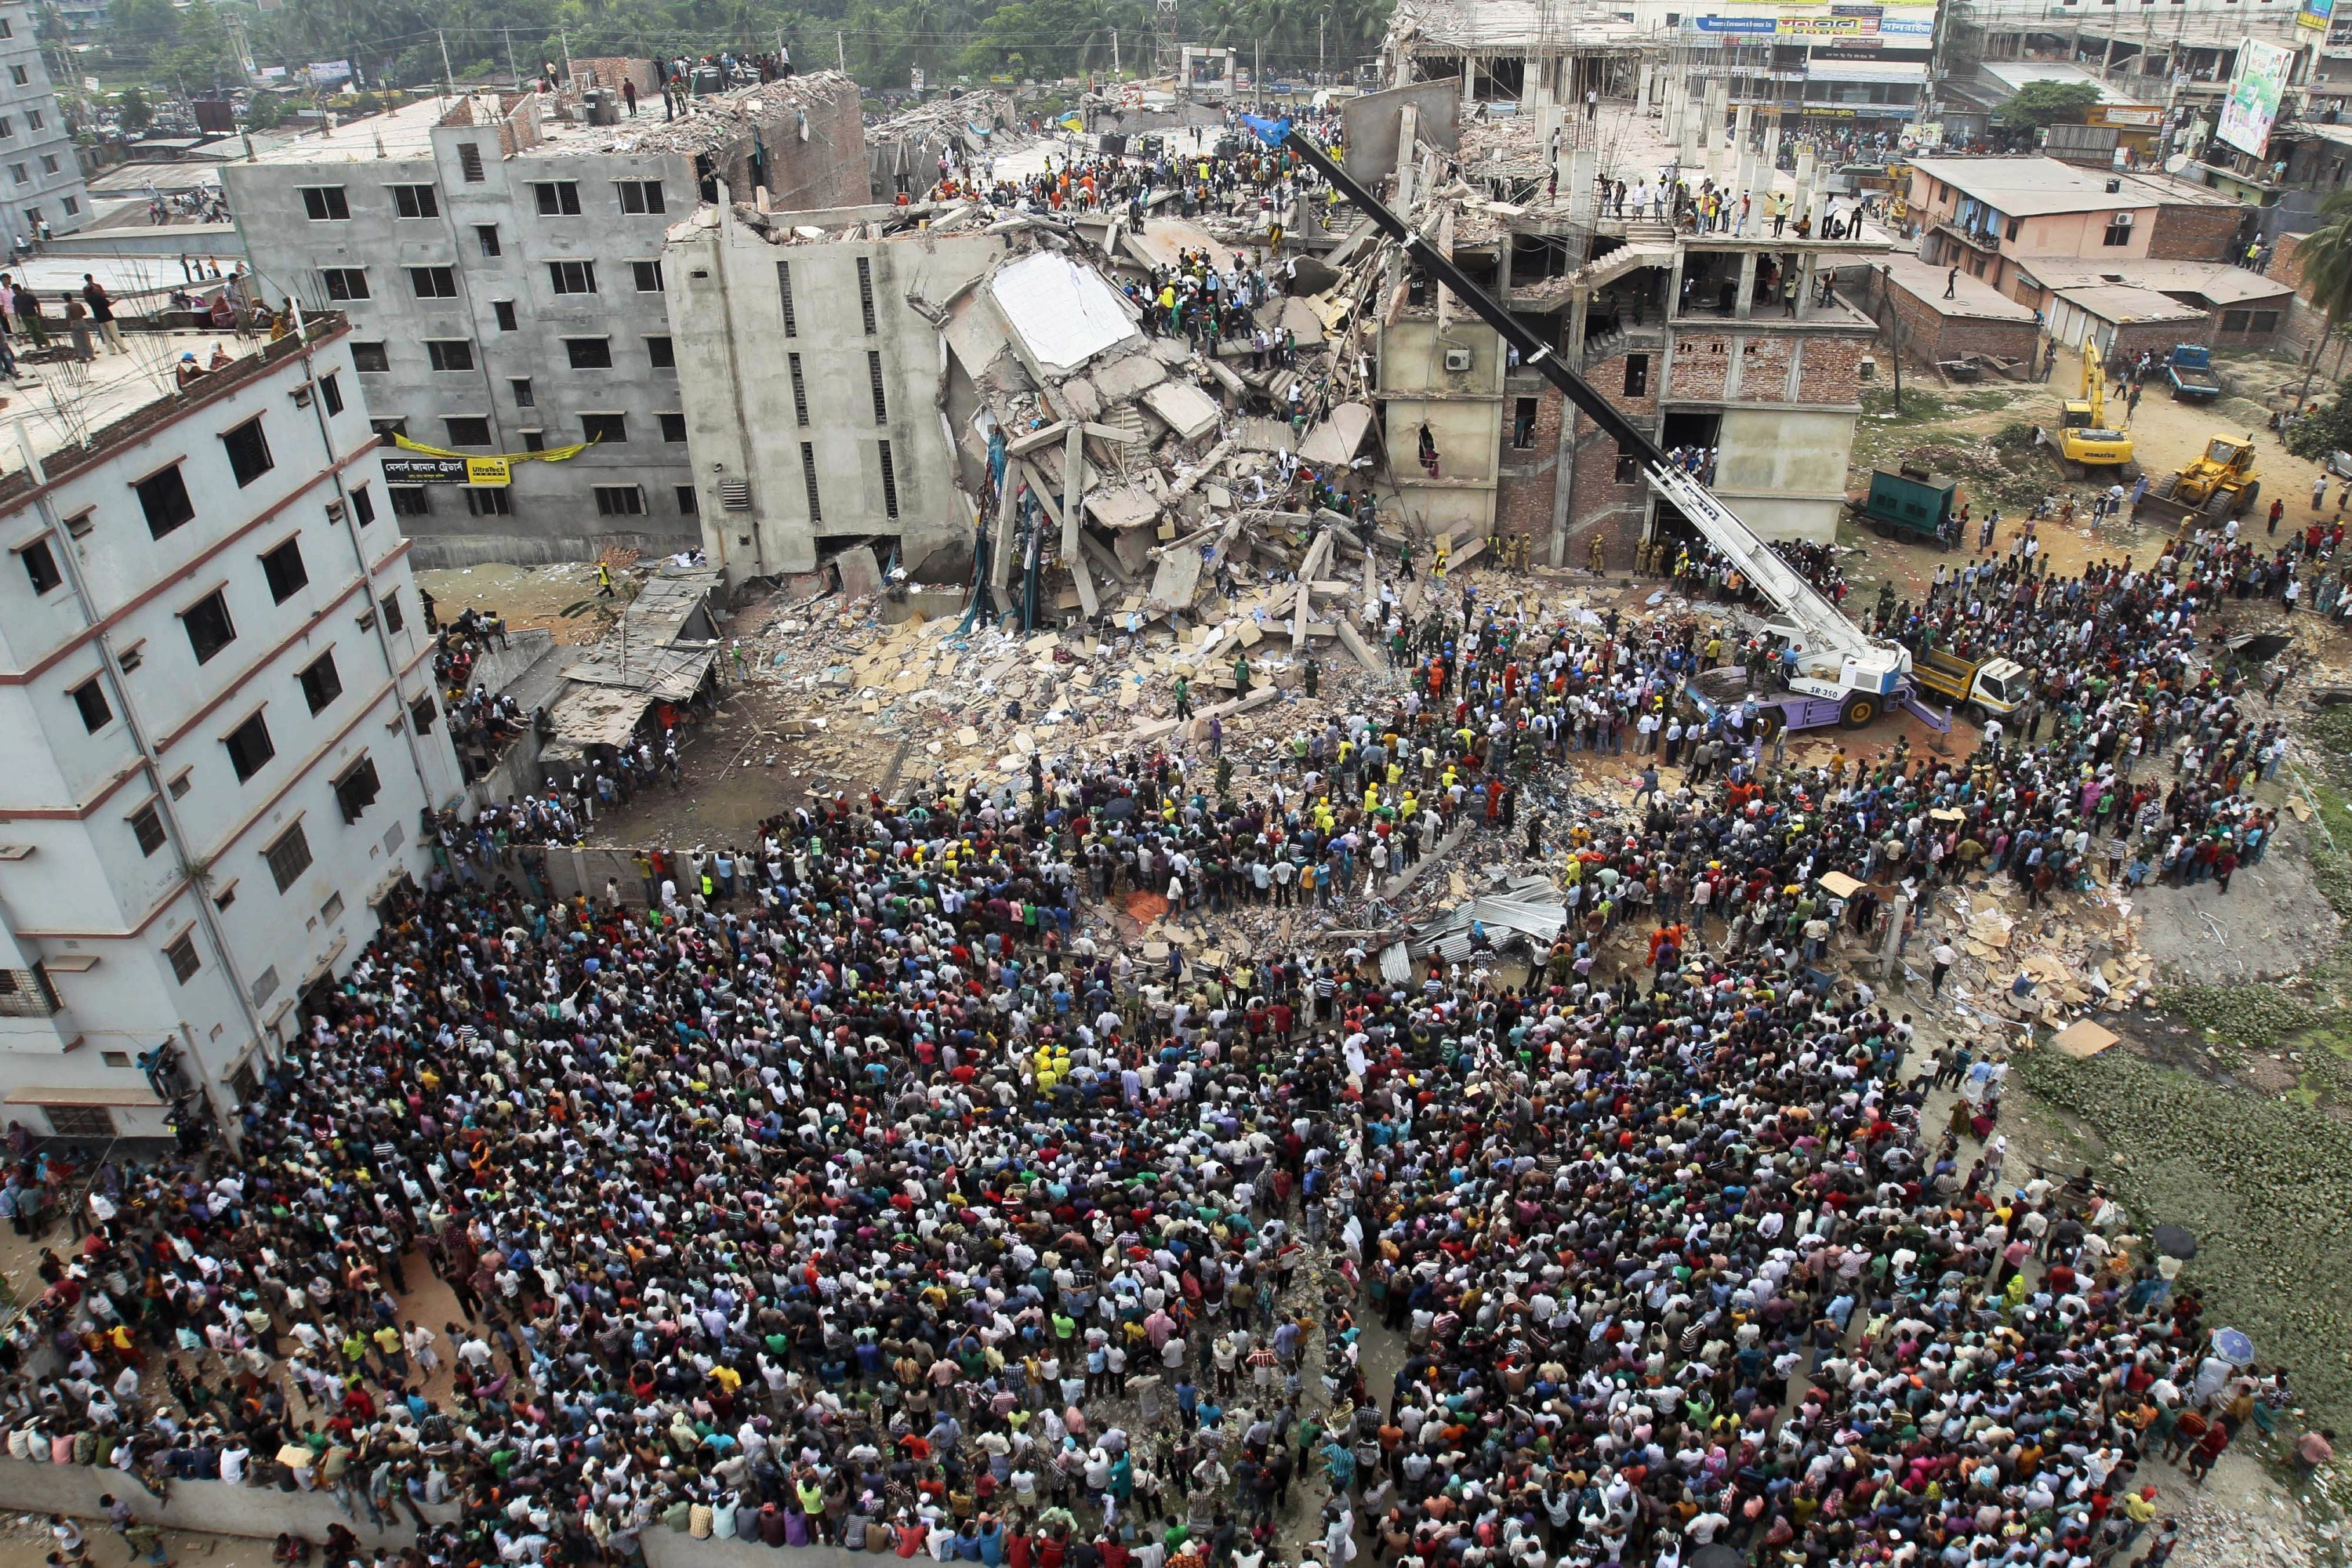 In this April 25, 2013, file photo, Bangladeshi people gather as rescuers look for survivors and victims at the site of the Rana Plaza building that collapsed a day earlier, in Savar, near Dhaka, Bangladesh. (AP Photo)